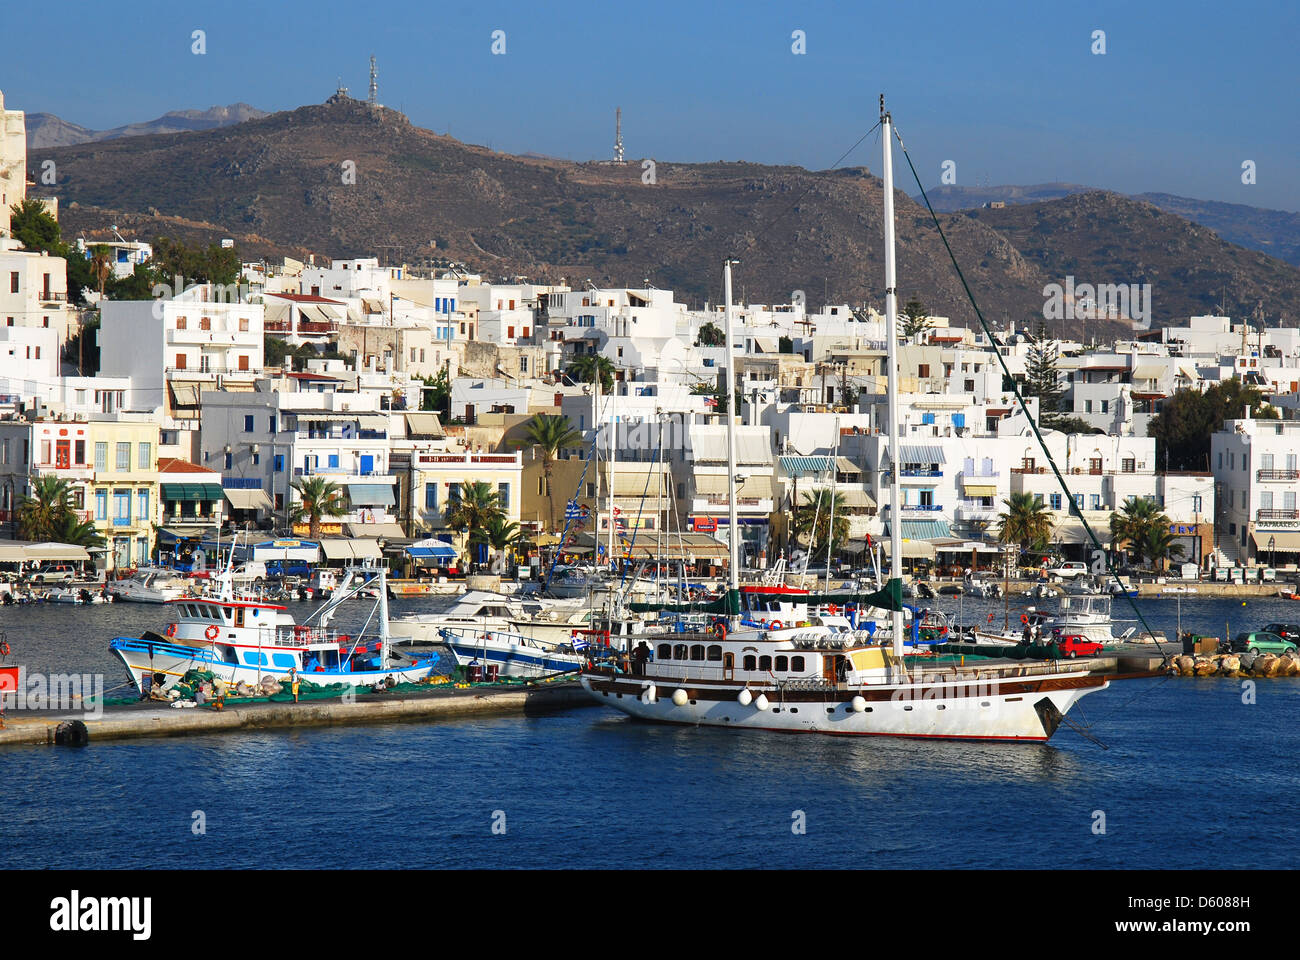 Port on the island of Naxos. Greece - Stock Image